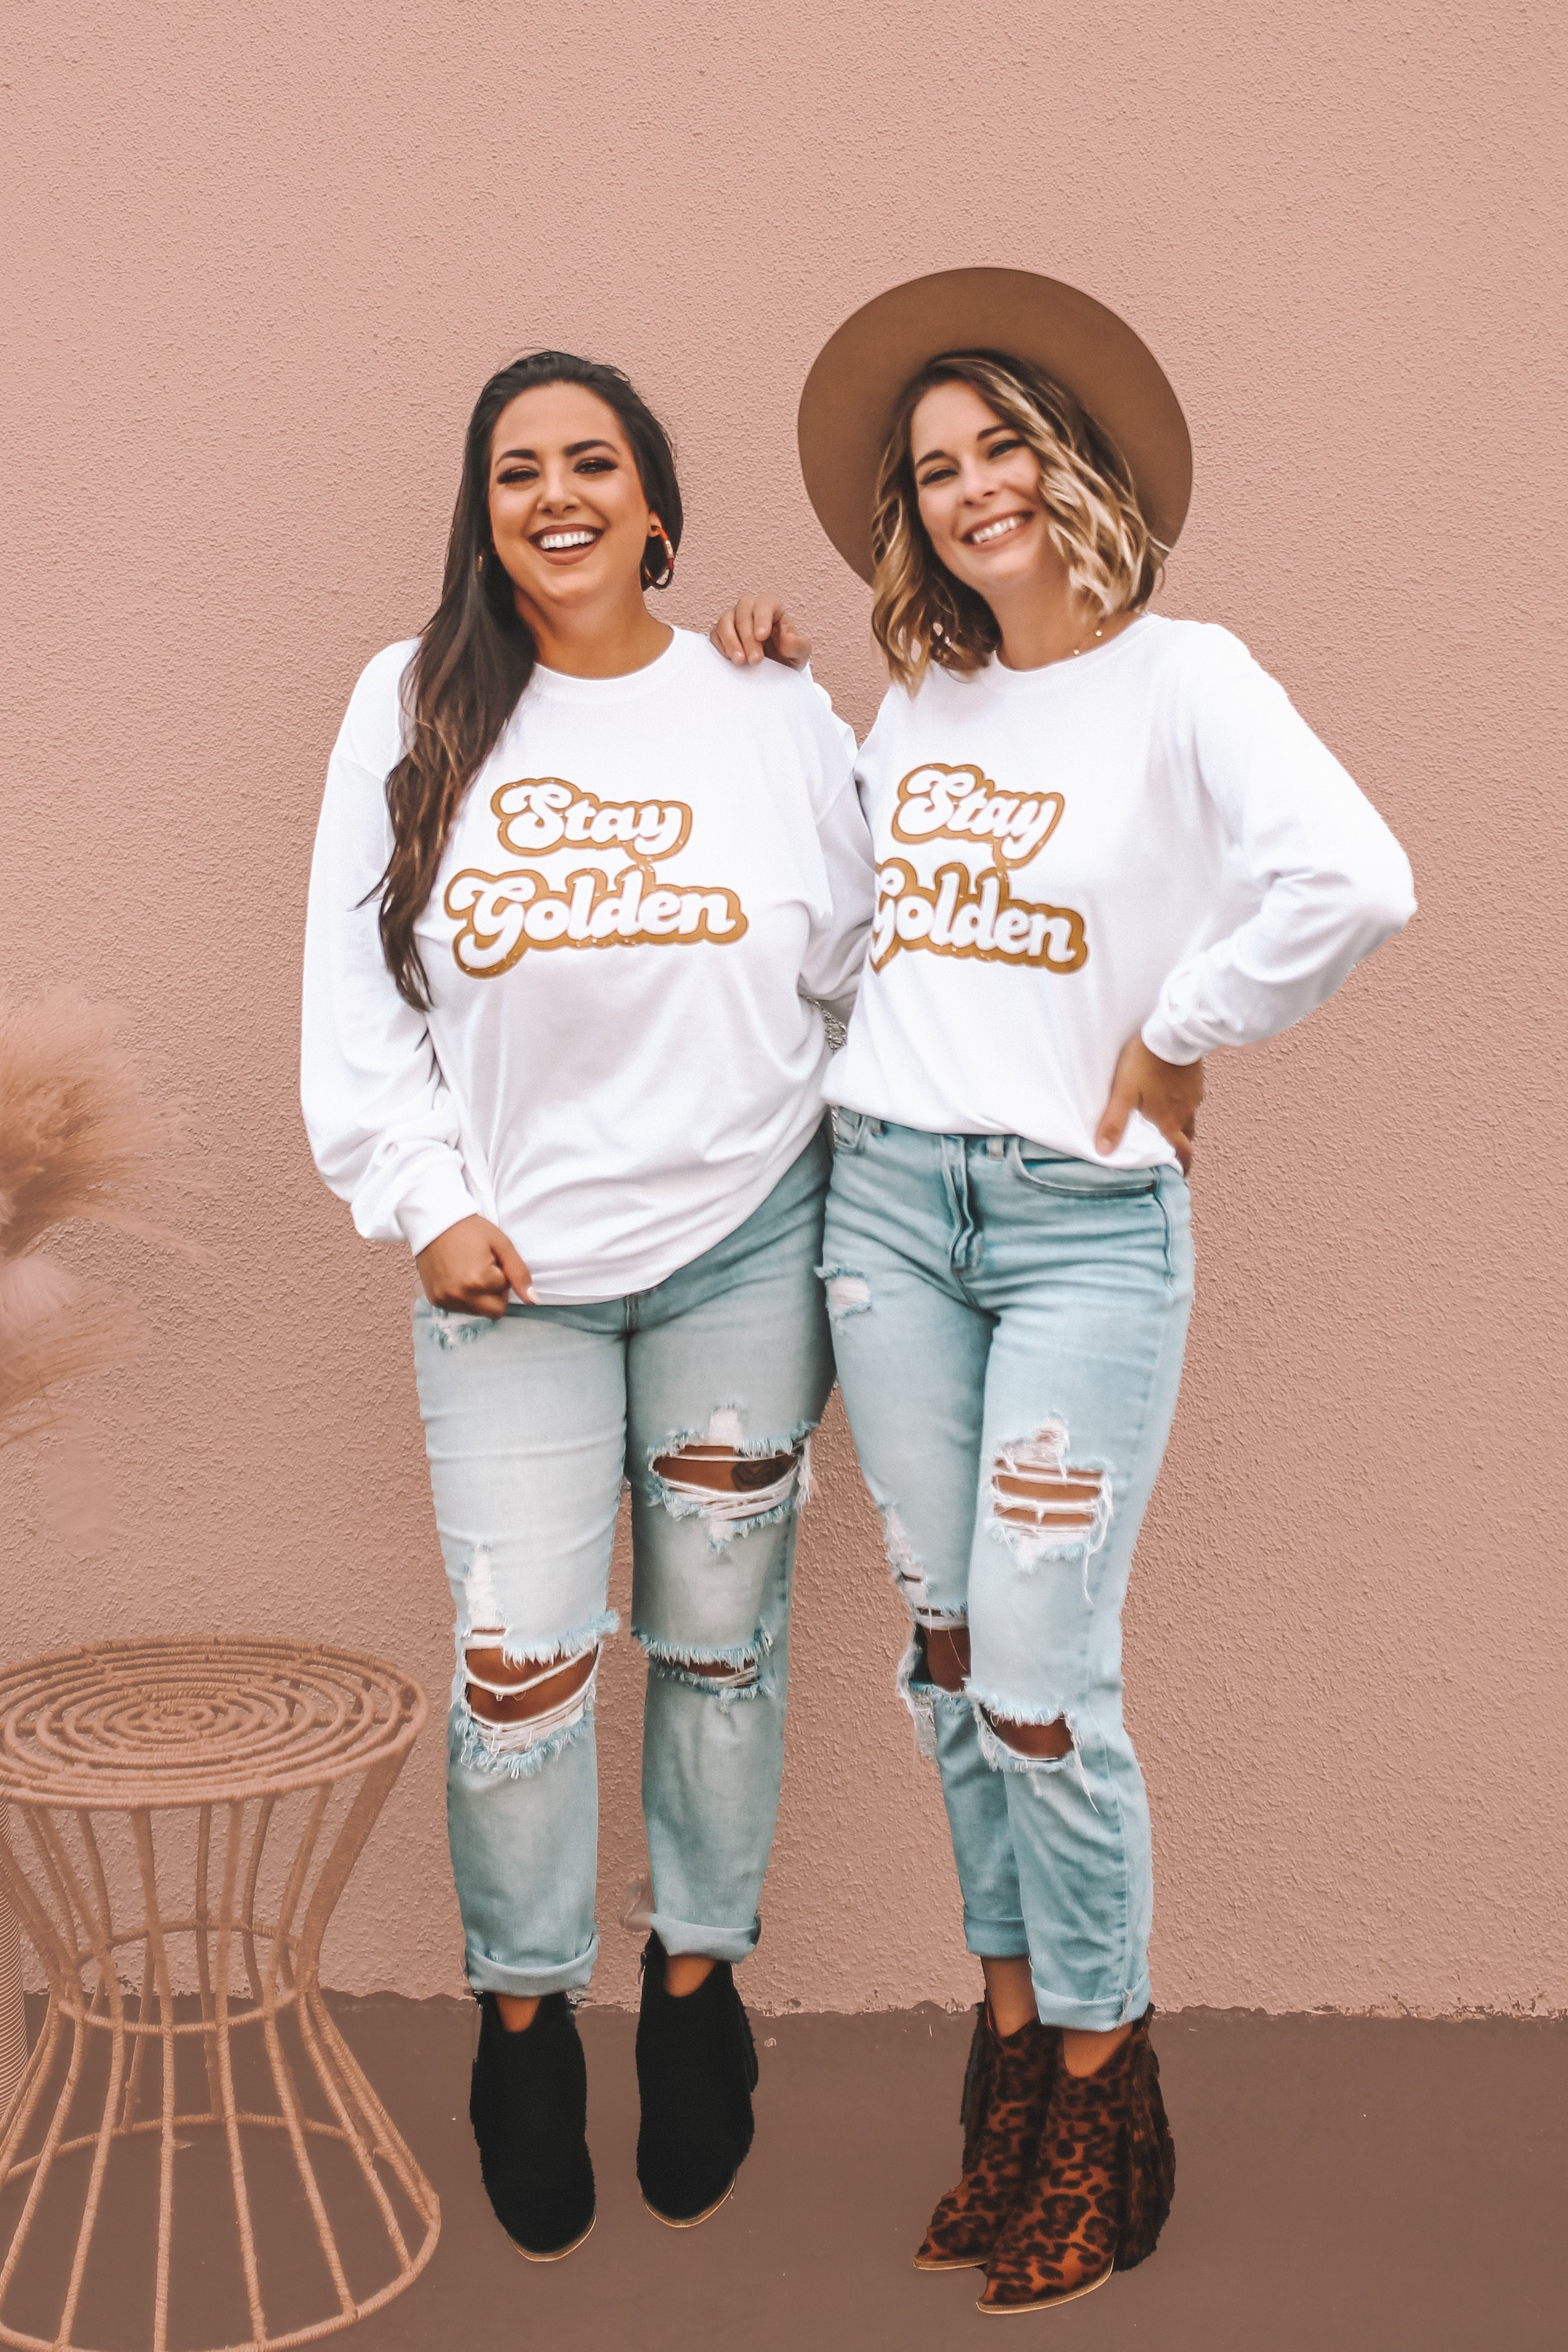 """MAVERICK EXCLUSIVE! WHITE UNISEX LONG SLEEVE TEE. GOLD """"STAY GOLDEN"""" GRAPHIC. 100% COTTON. AMANDA IS 5'7 SIZE 2, WEARING MEDIUM. GABBY IS 5'8"""" A SIZE 12 WEARING A LARGE FOR OVERSIZED LOOKS. S 0-4 M 4-8 L 8-12 XL 12-16 XXL 16-18"""